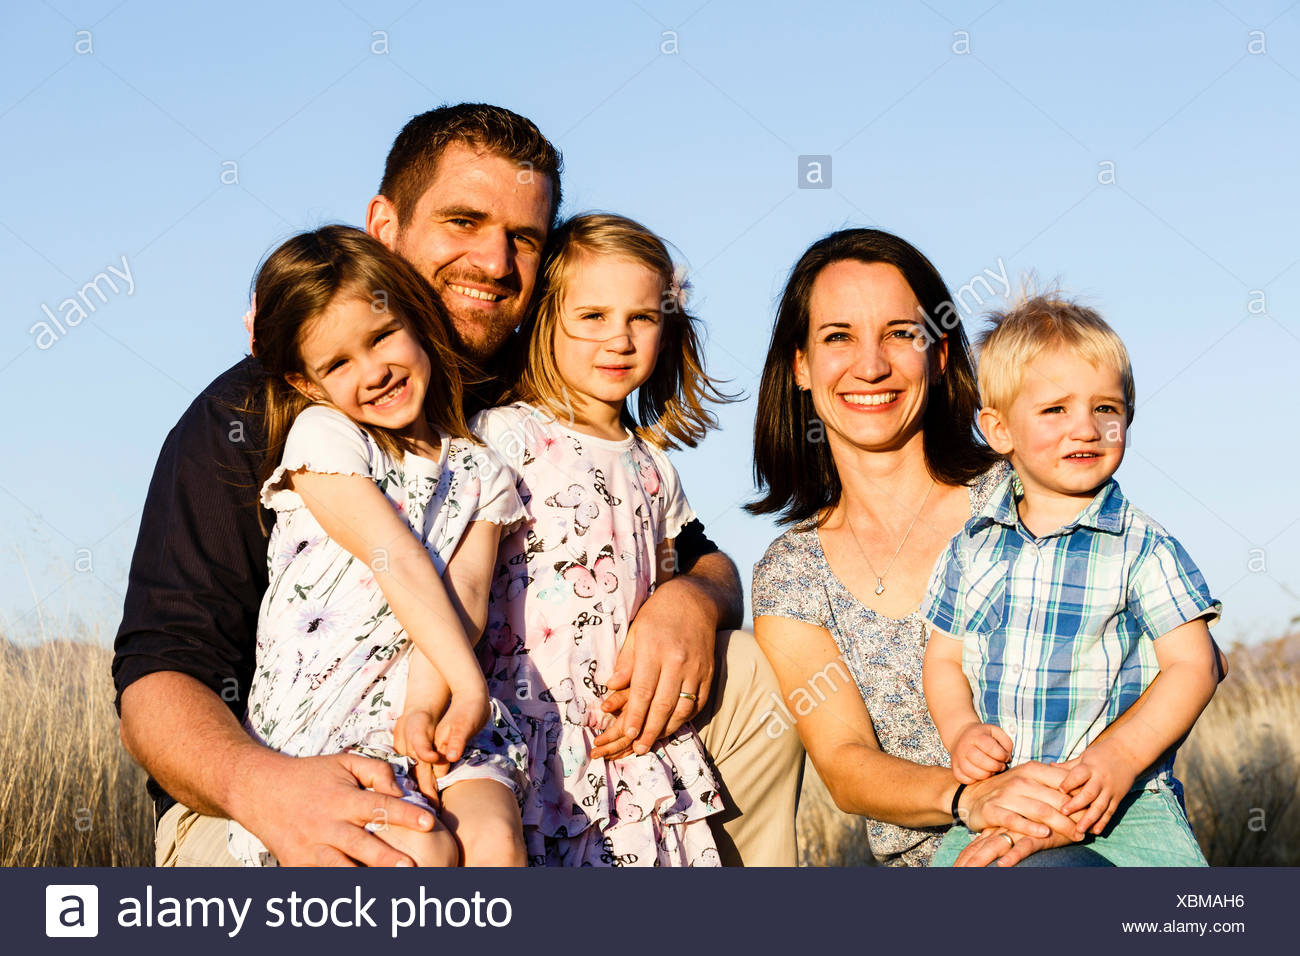 Family portrait, parents with three small children, Namibia - Stock Image